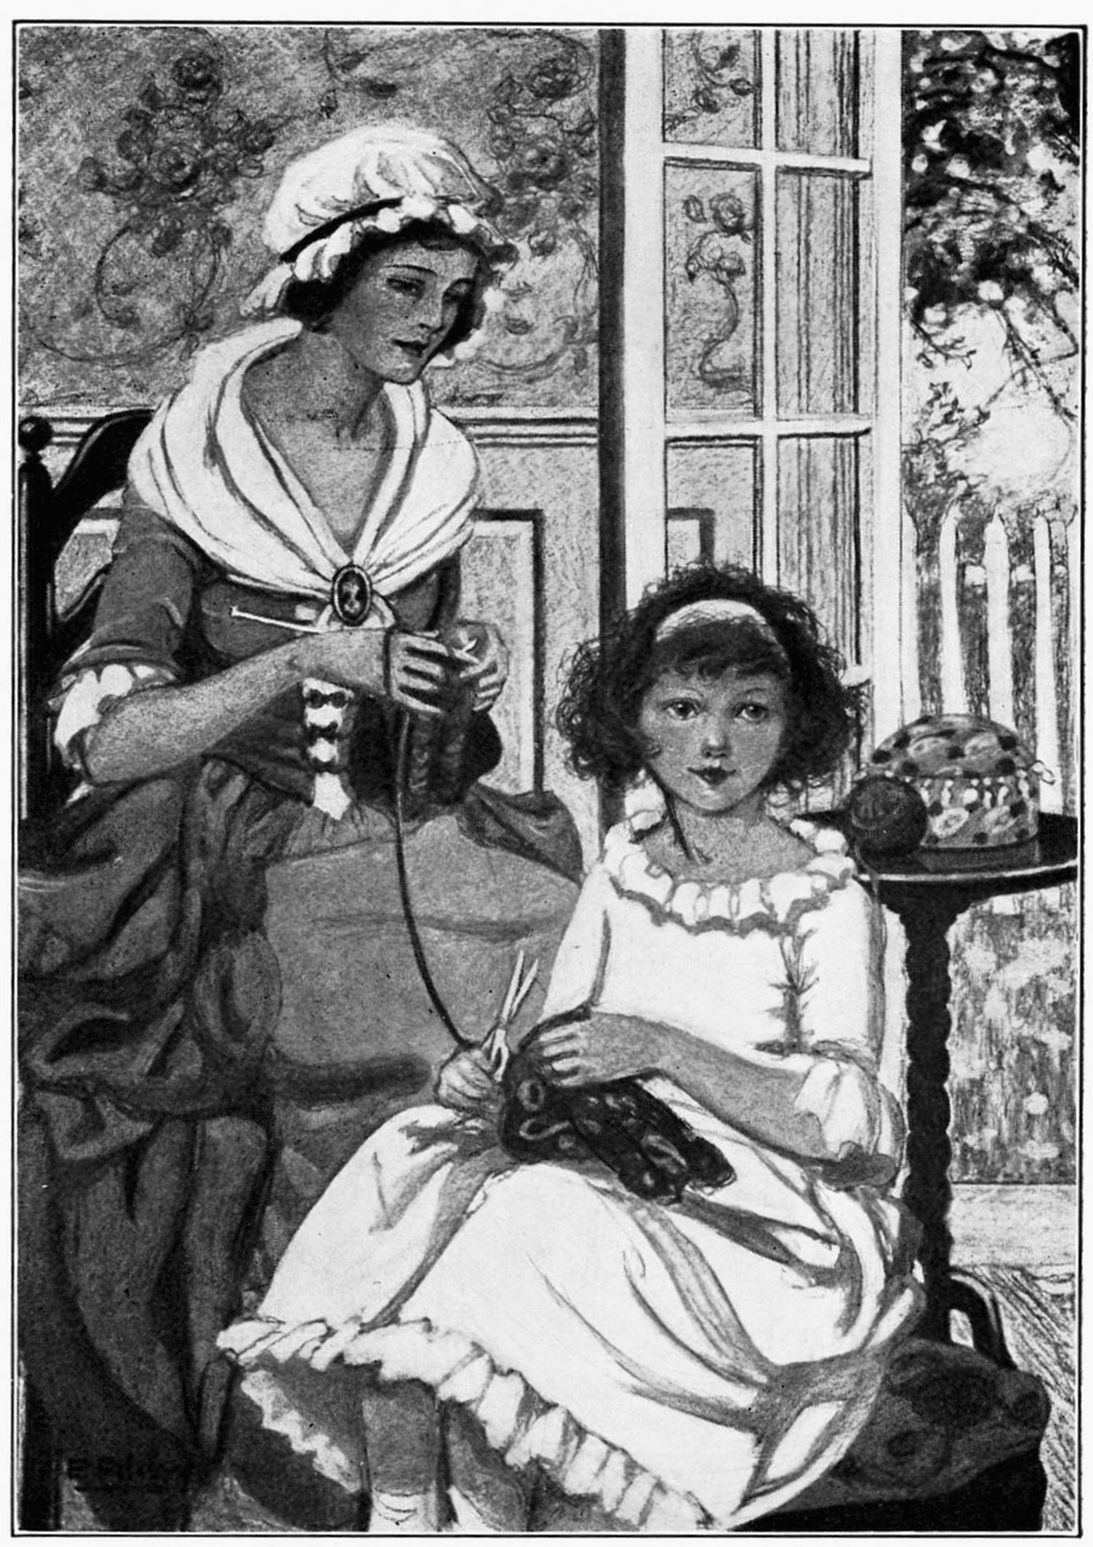 The project gutenberg ebook of a little maid of old maine by alice how long the afternoon seemed fandeluxe Images